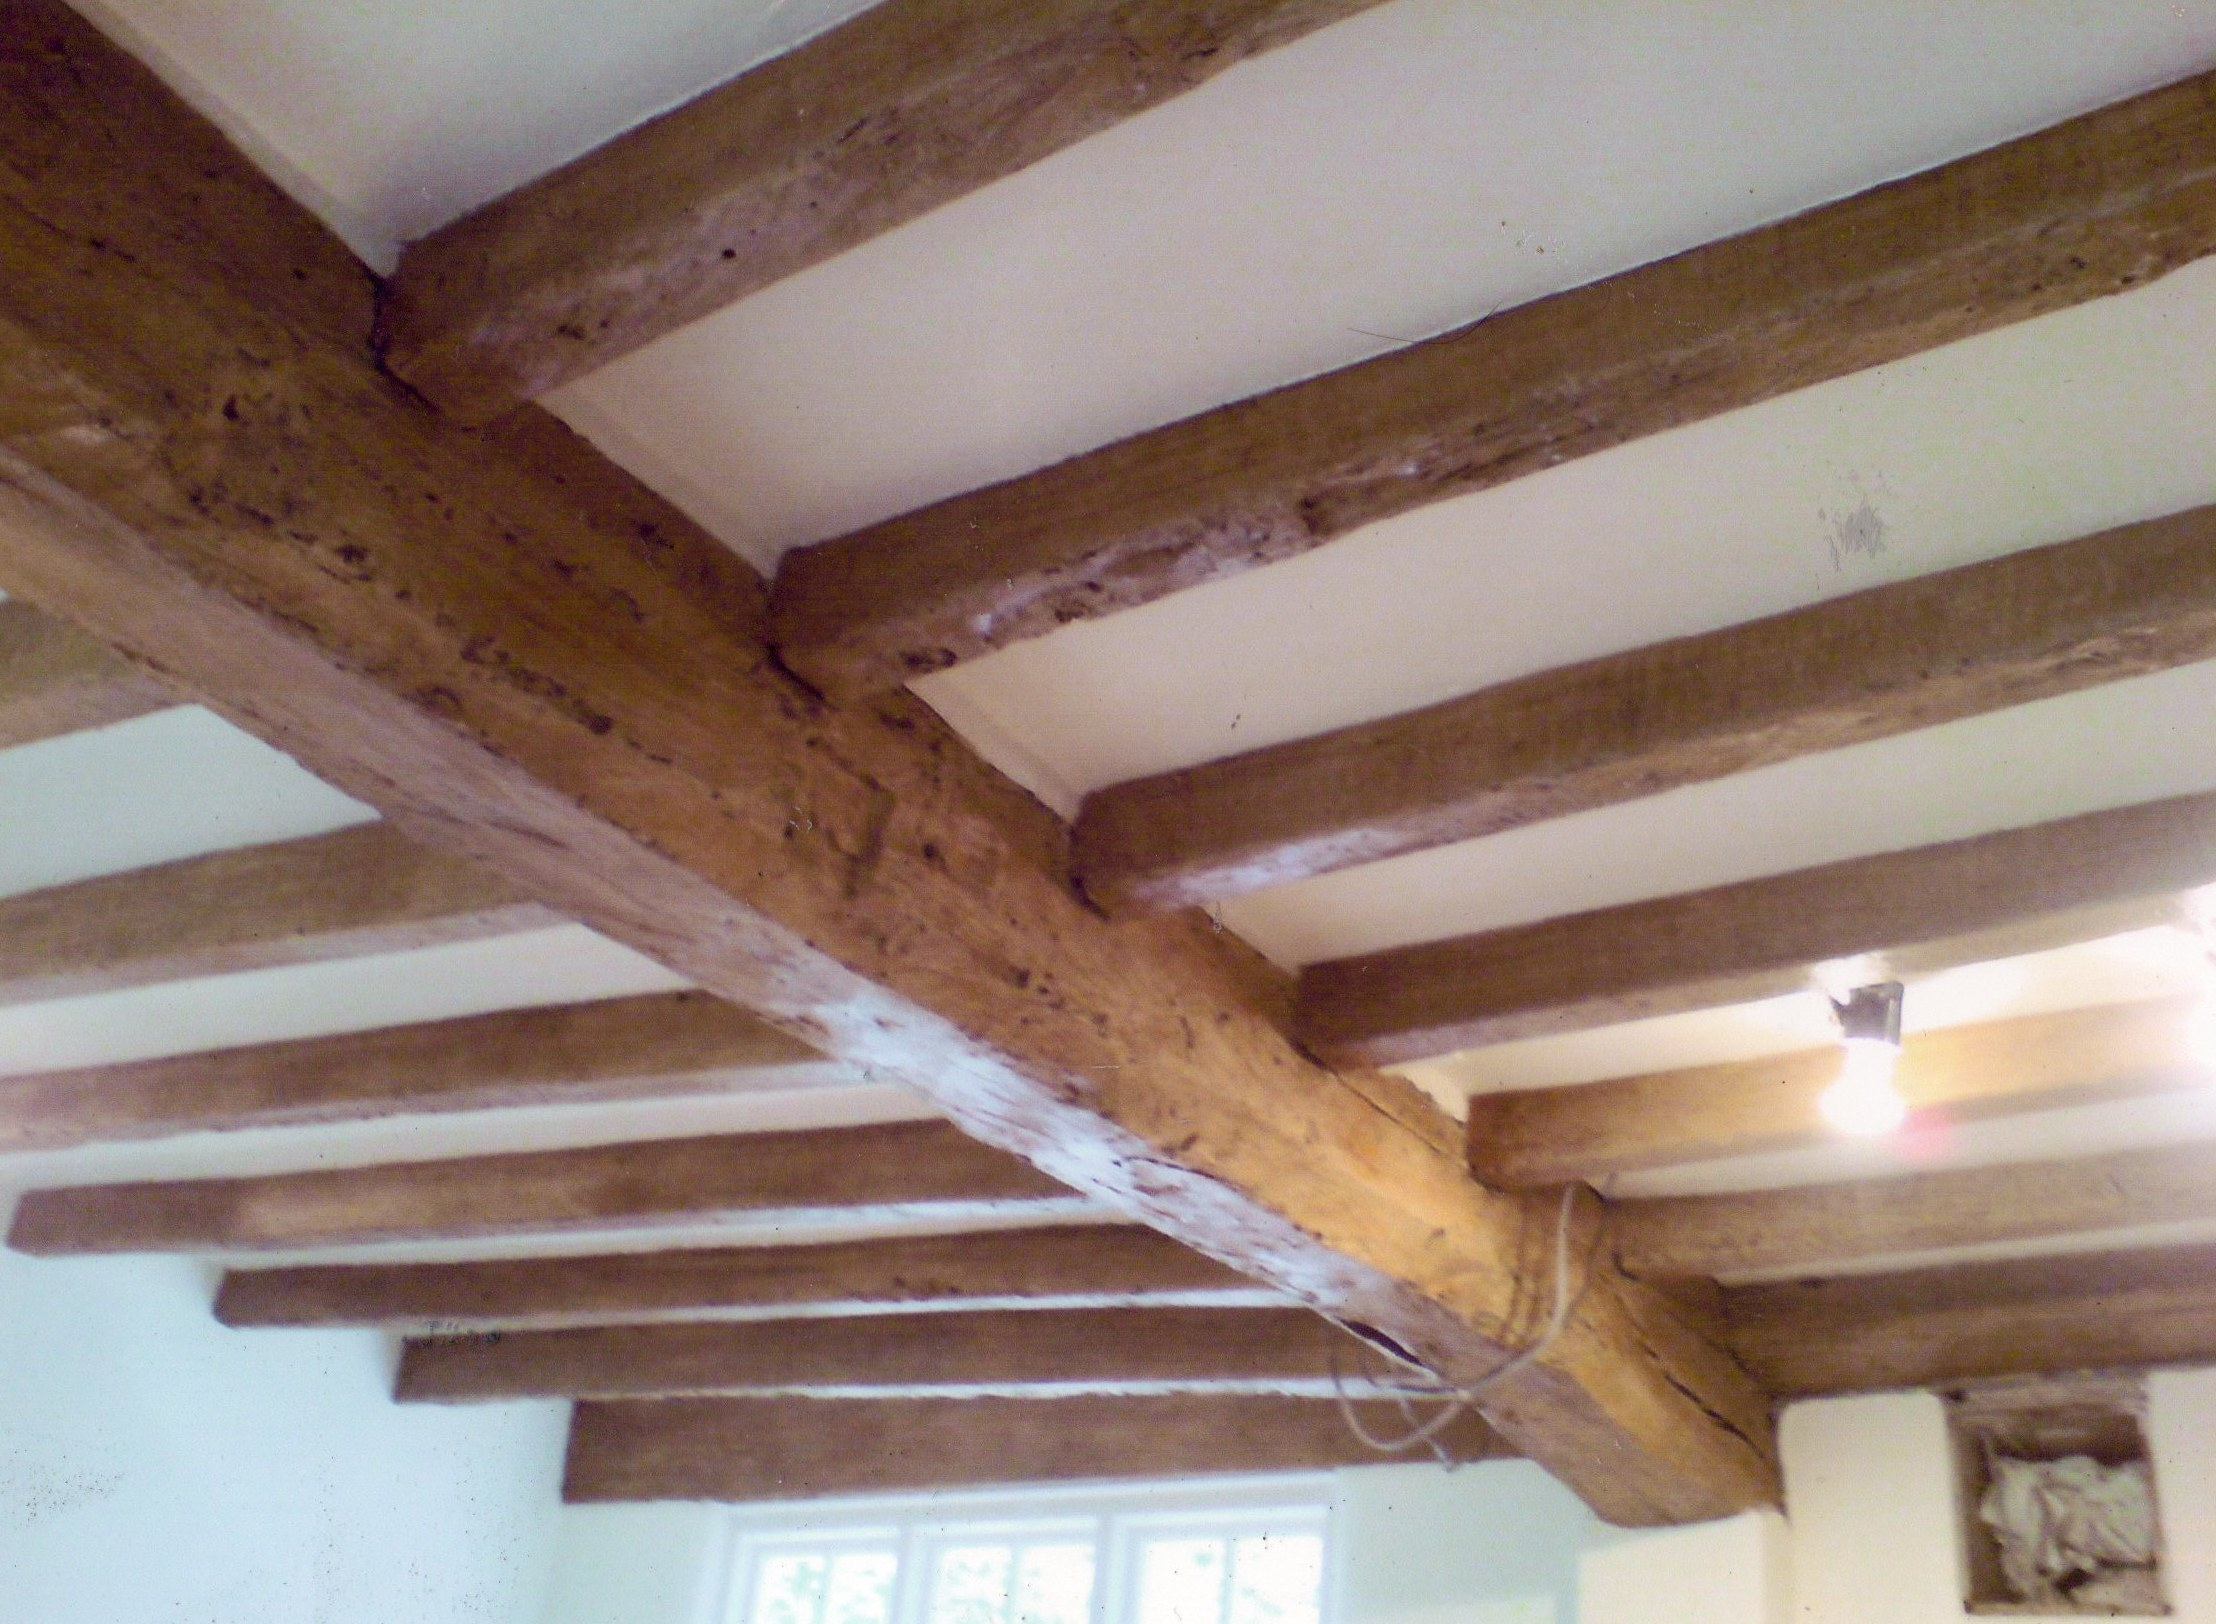 Faux bois ceiling beams-wood graining.